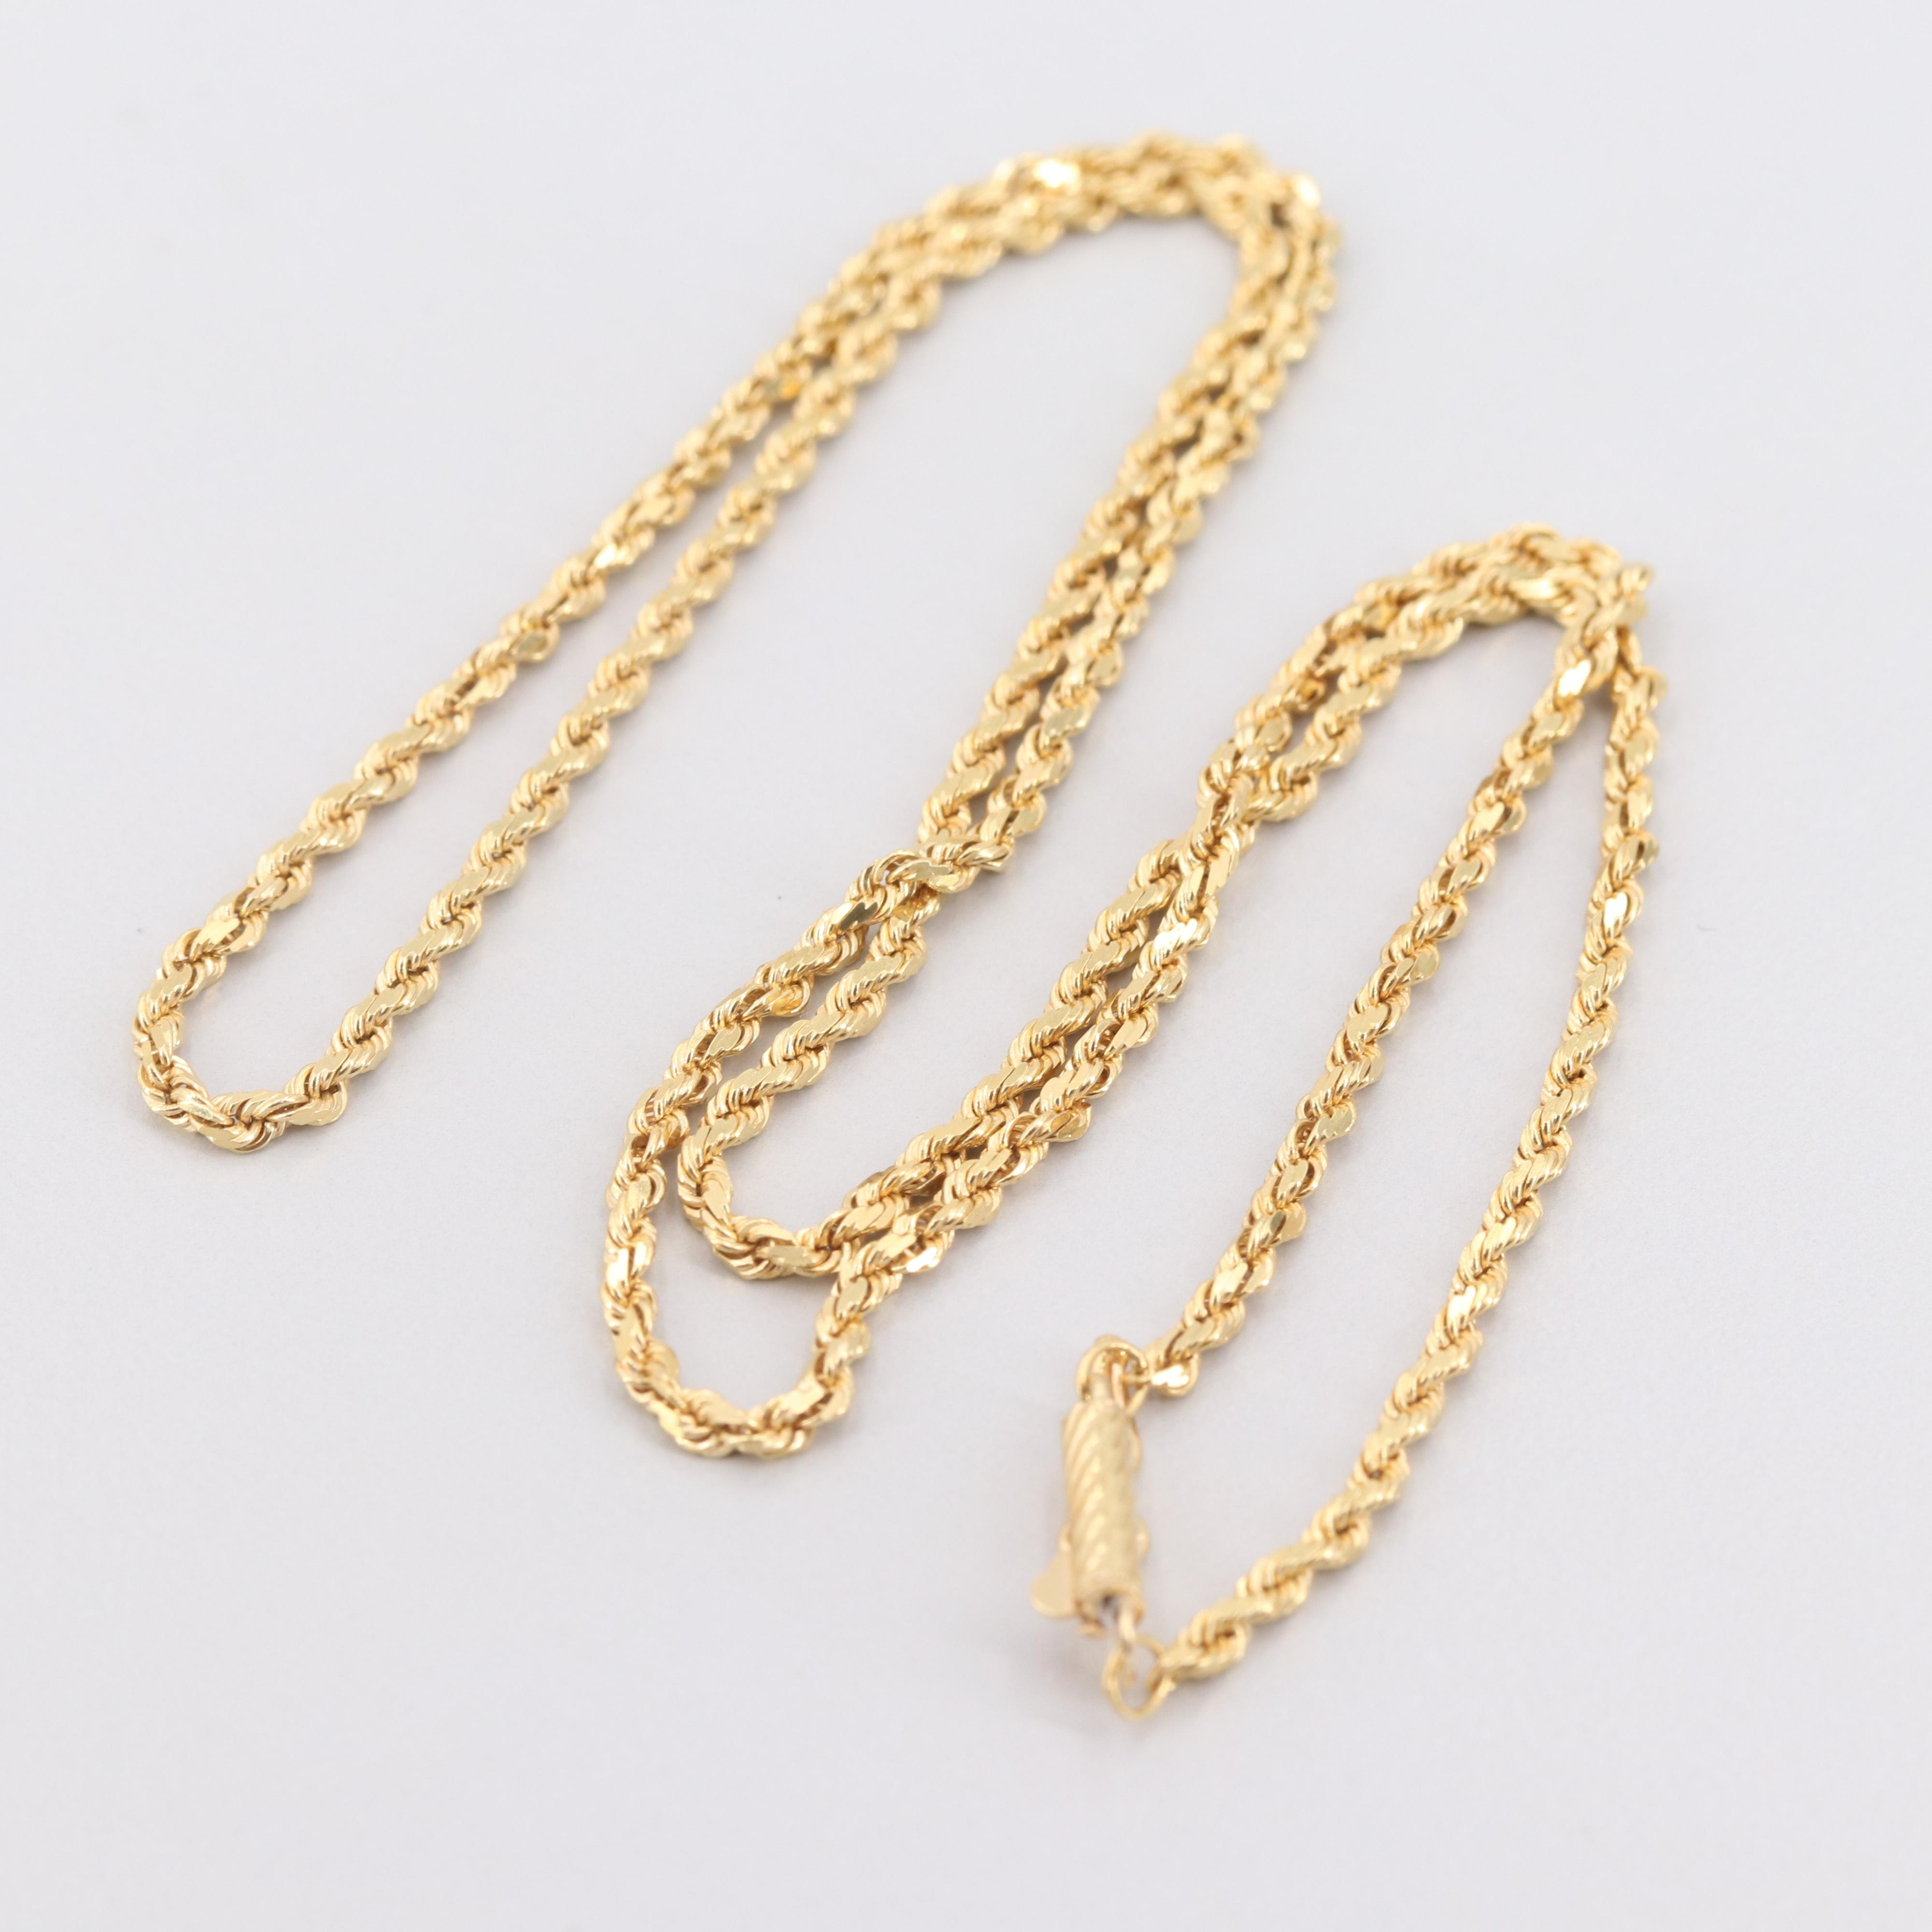 18K Yellow Gold Fancy Rope Chain Necklace